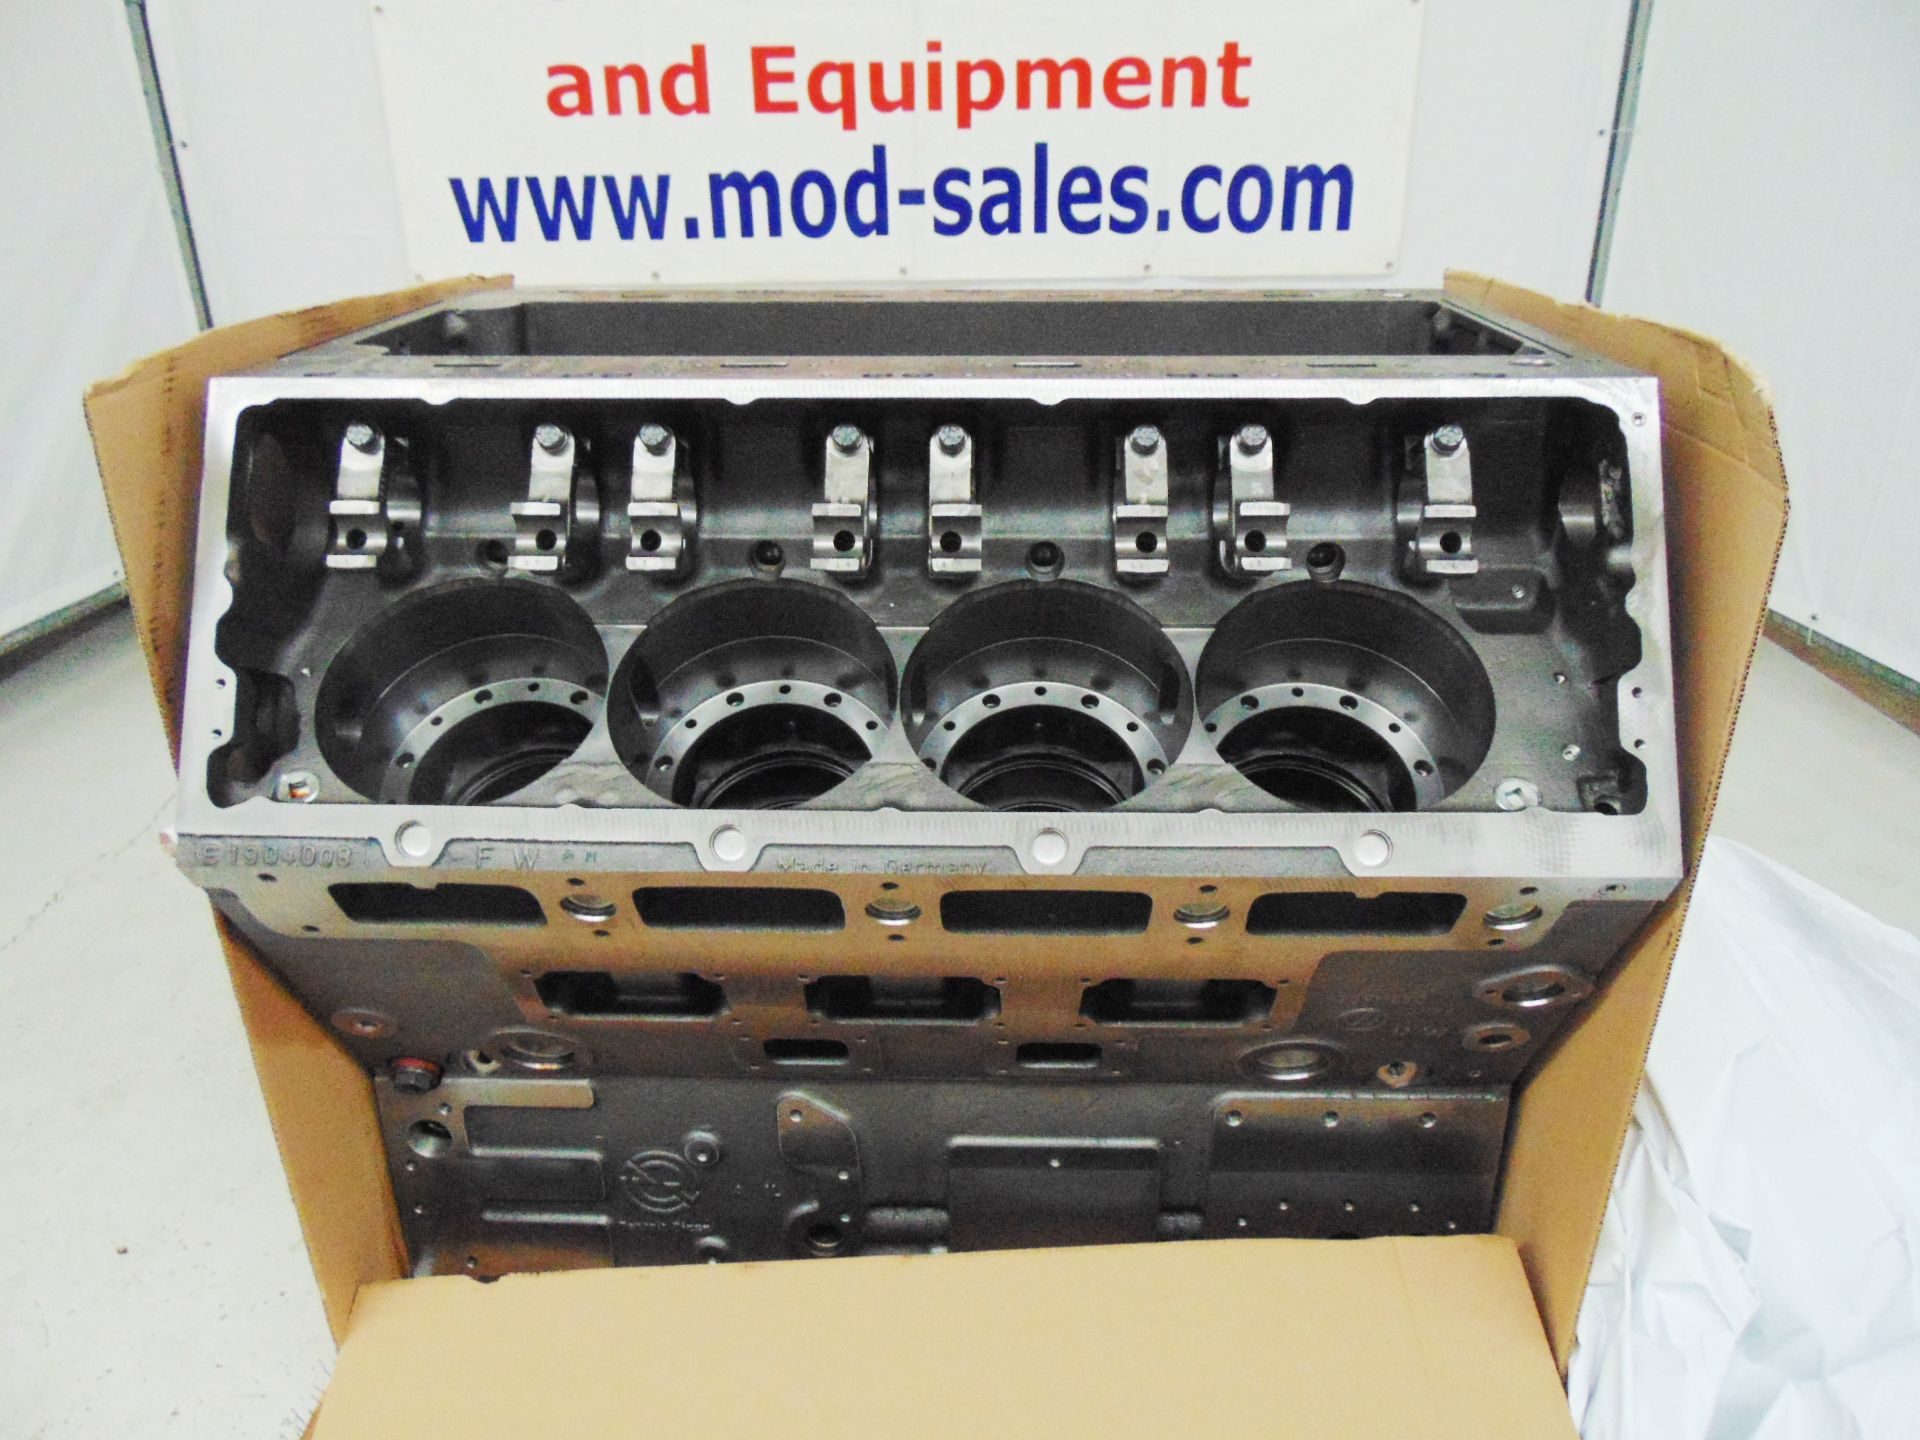 Lot 12 - Brand New & Unused Detroit Diesel V8 20V149 New Bare Engine Block